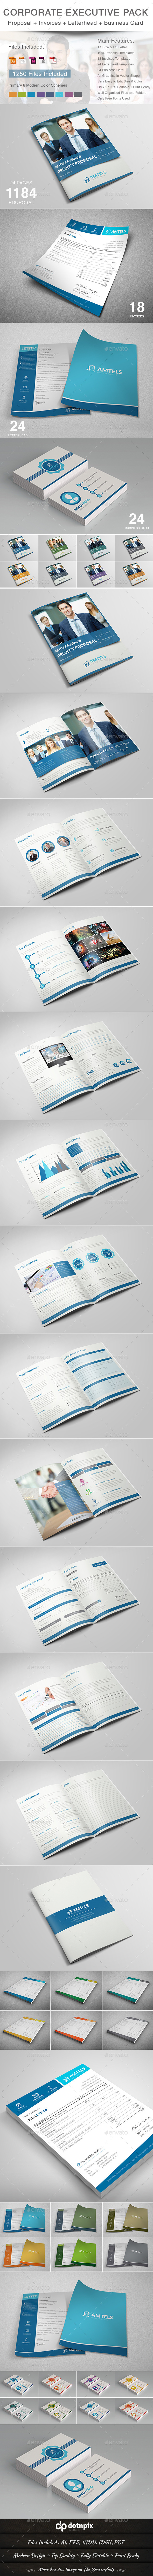 GraphicRiver Corporate Executive Pack 11123008